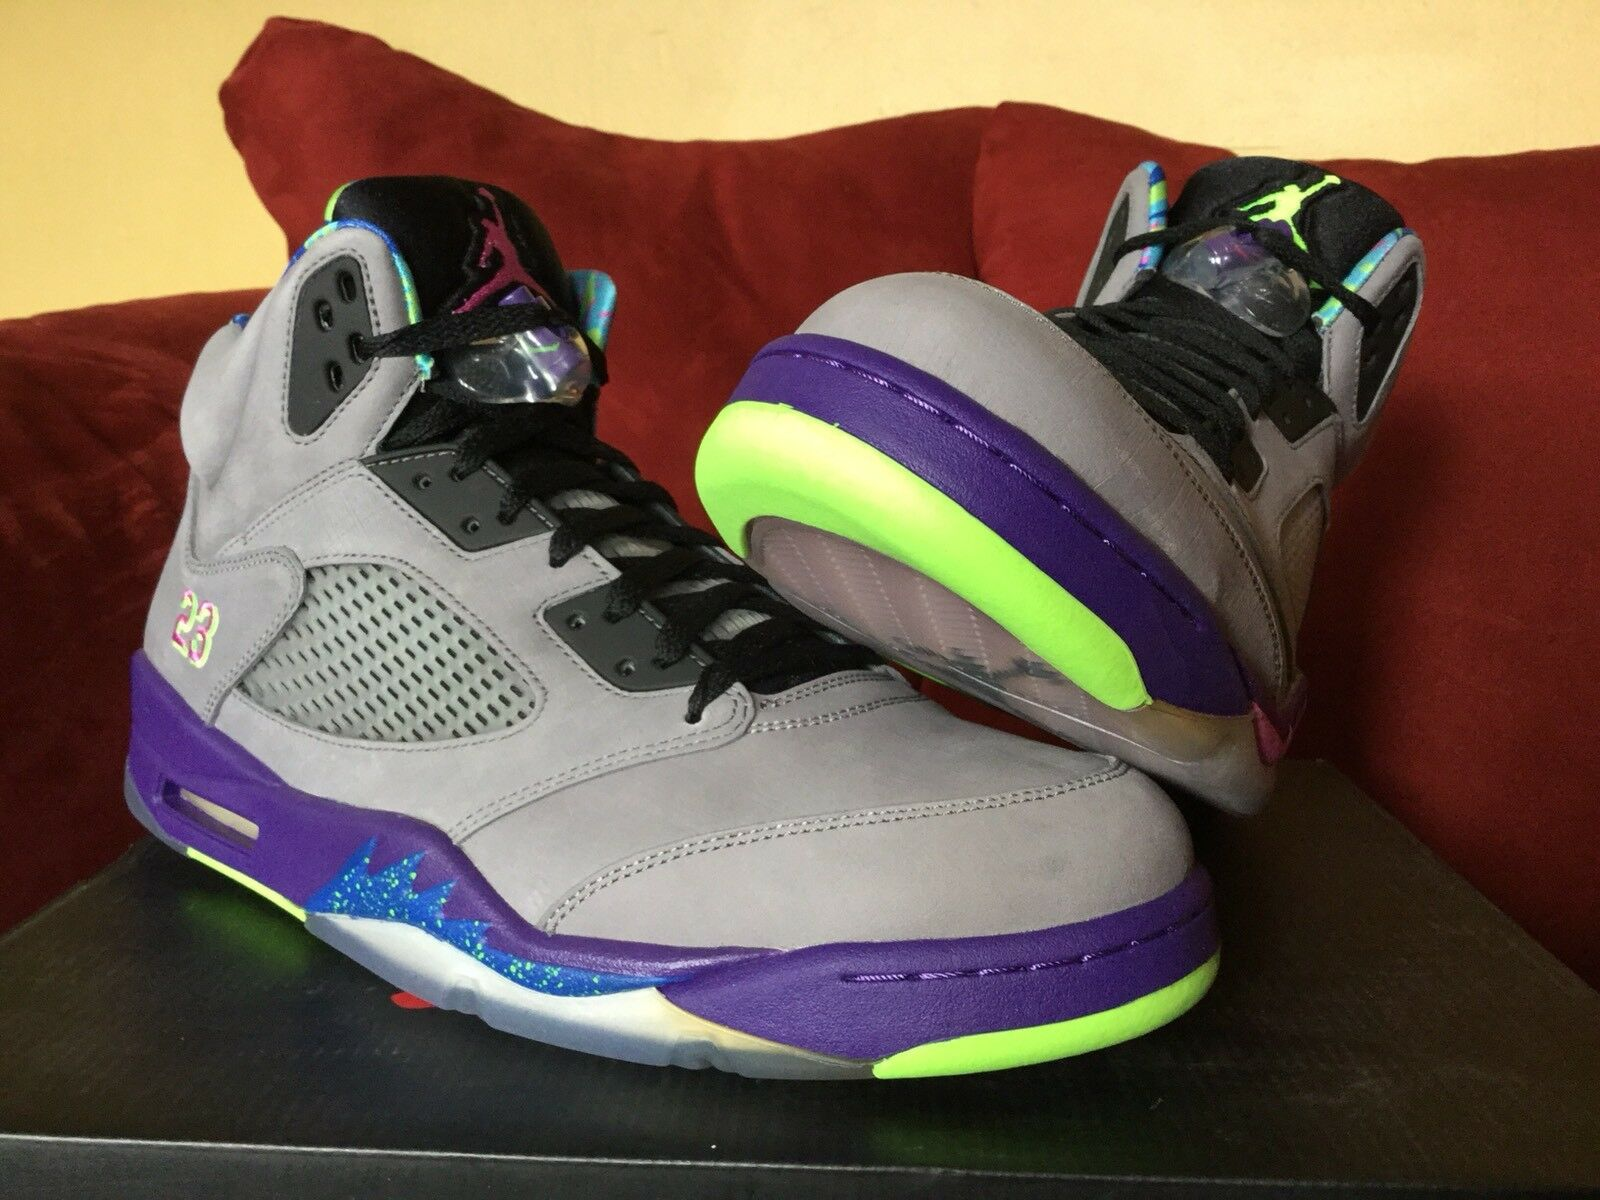 Brand New  Jordan 5 Bel Air Size 14  Never Worn  Nike Retro 2013  Factory-Laced